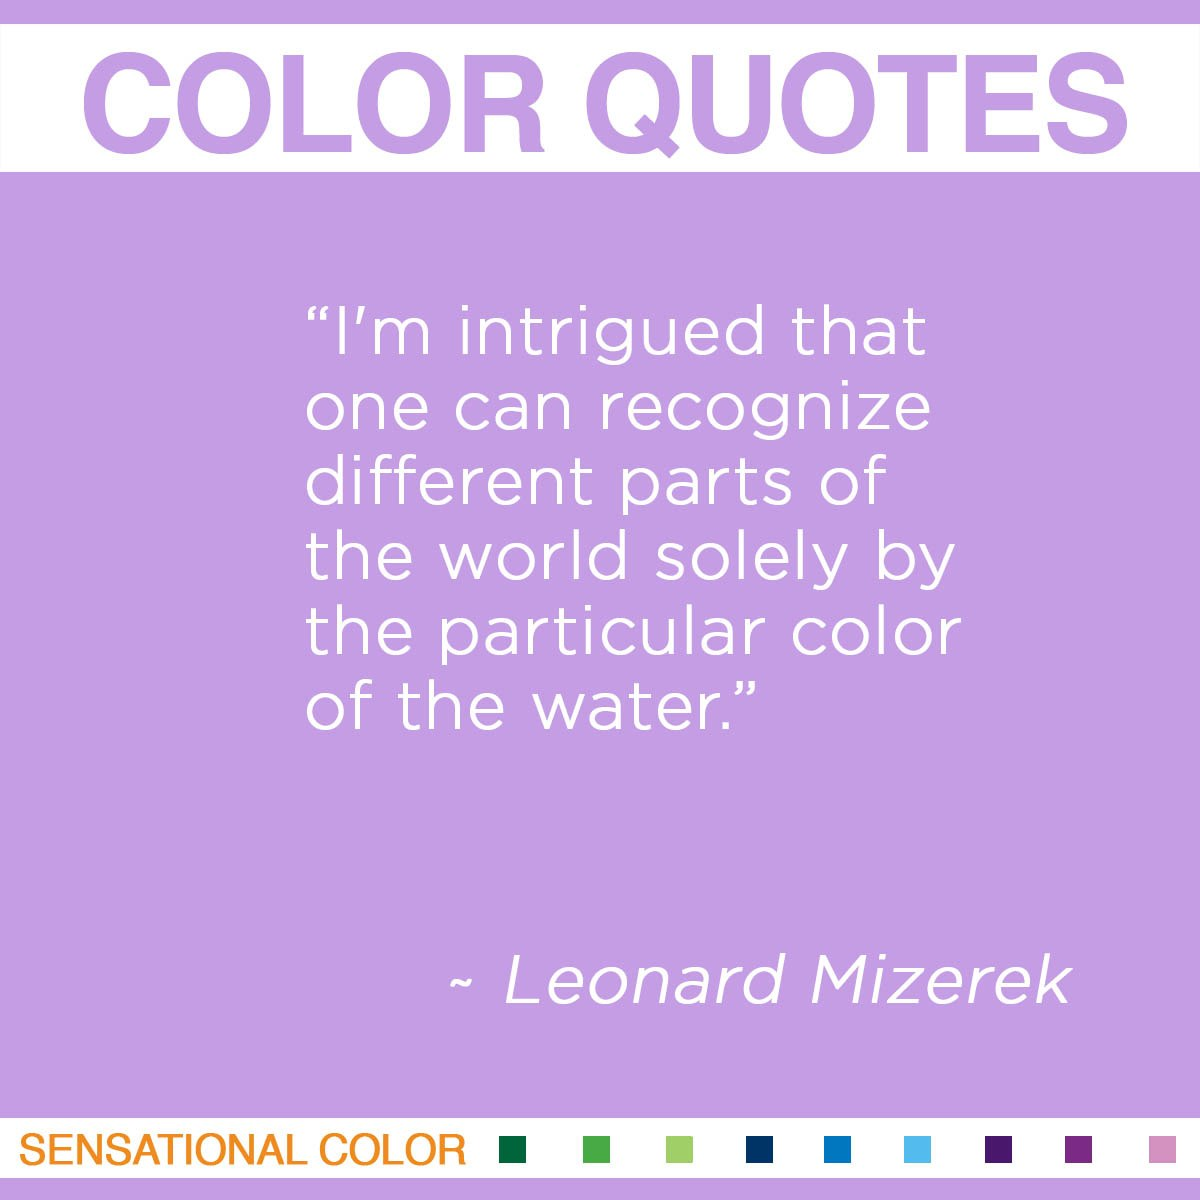 """I'm intrigued that one can recognize different parts of the world solely by the particular color of the water."" -  Leonard Mizerek"